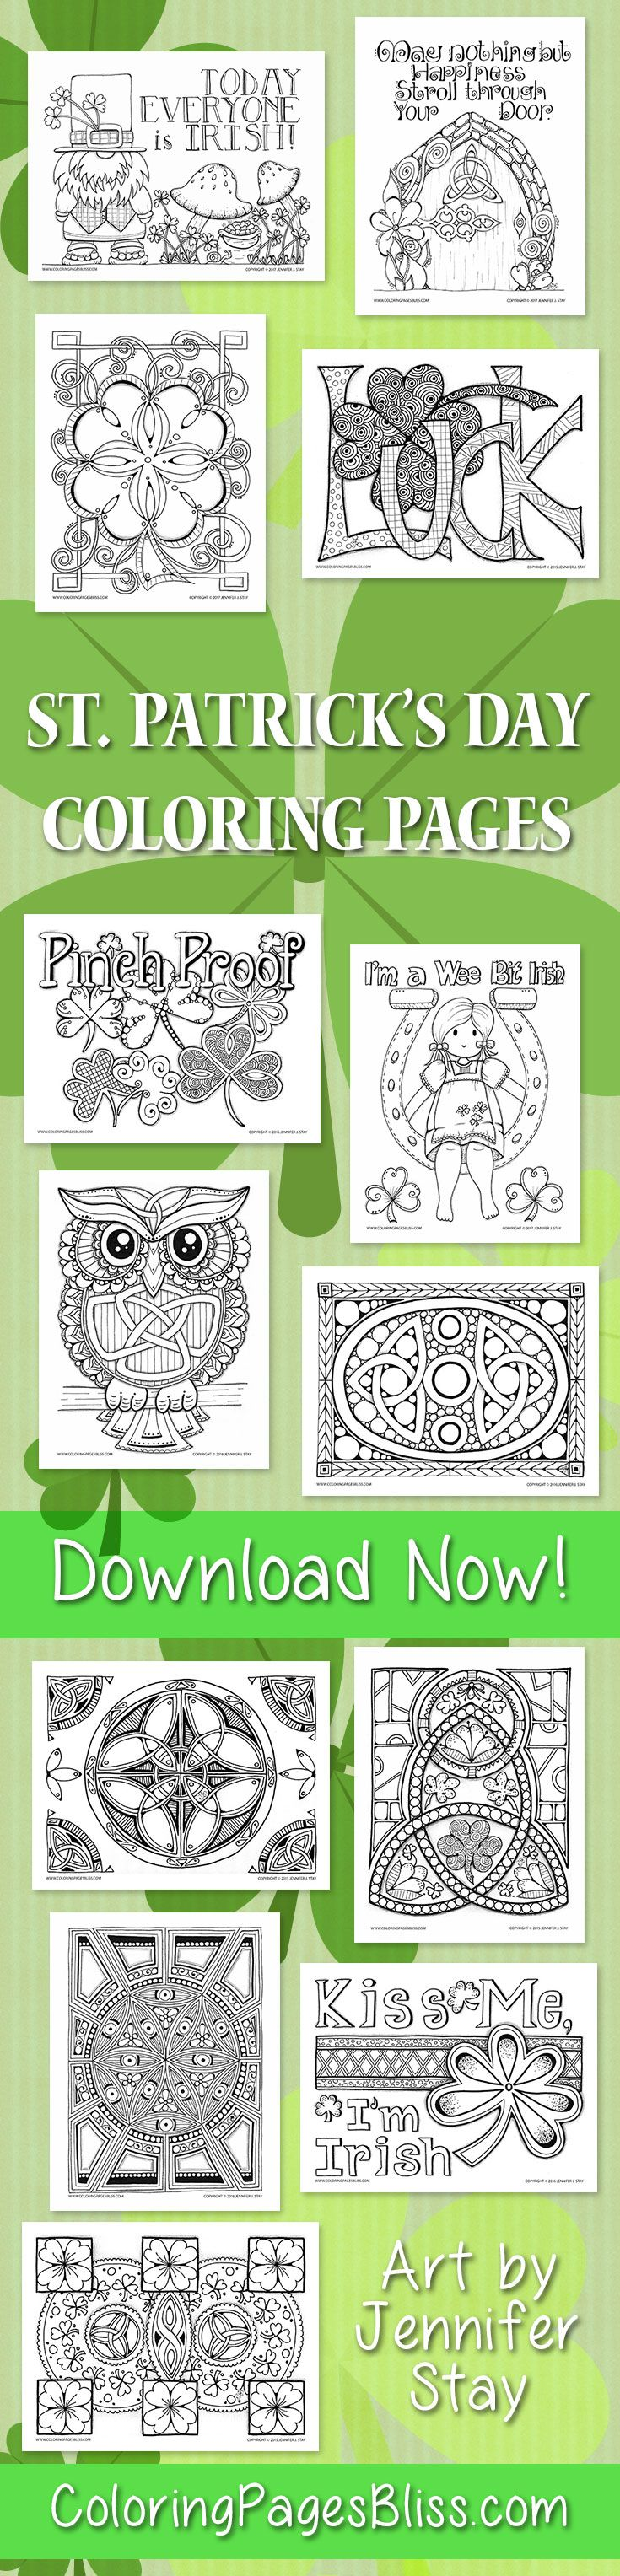 556 Best Adult Coloring Pages Images On Pinterest Adult Coloring